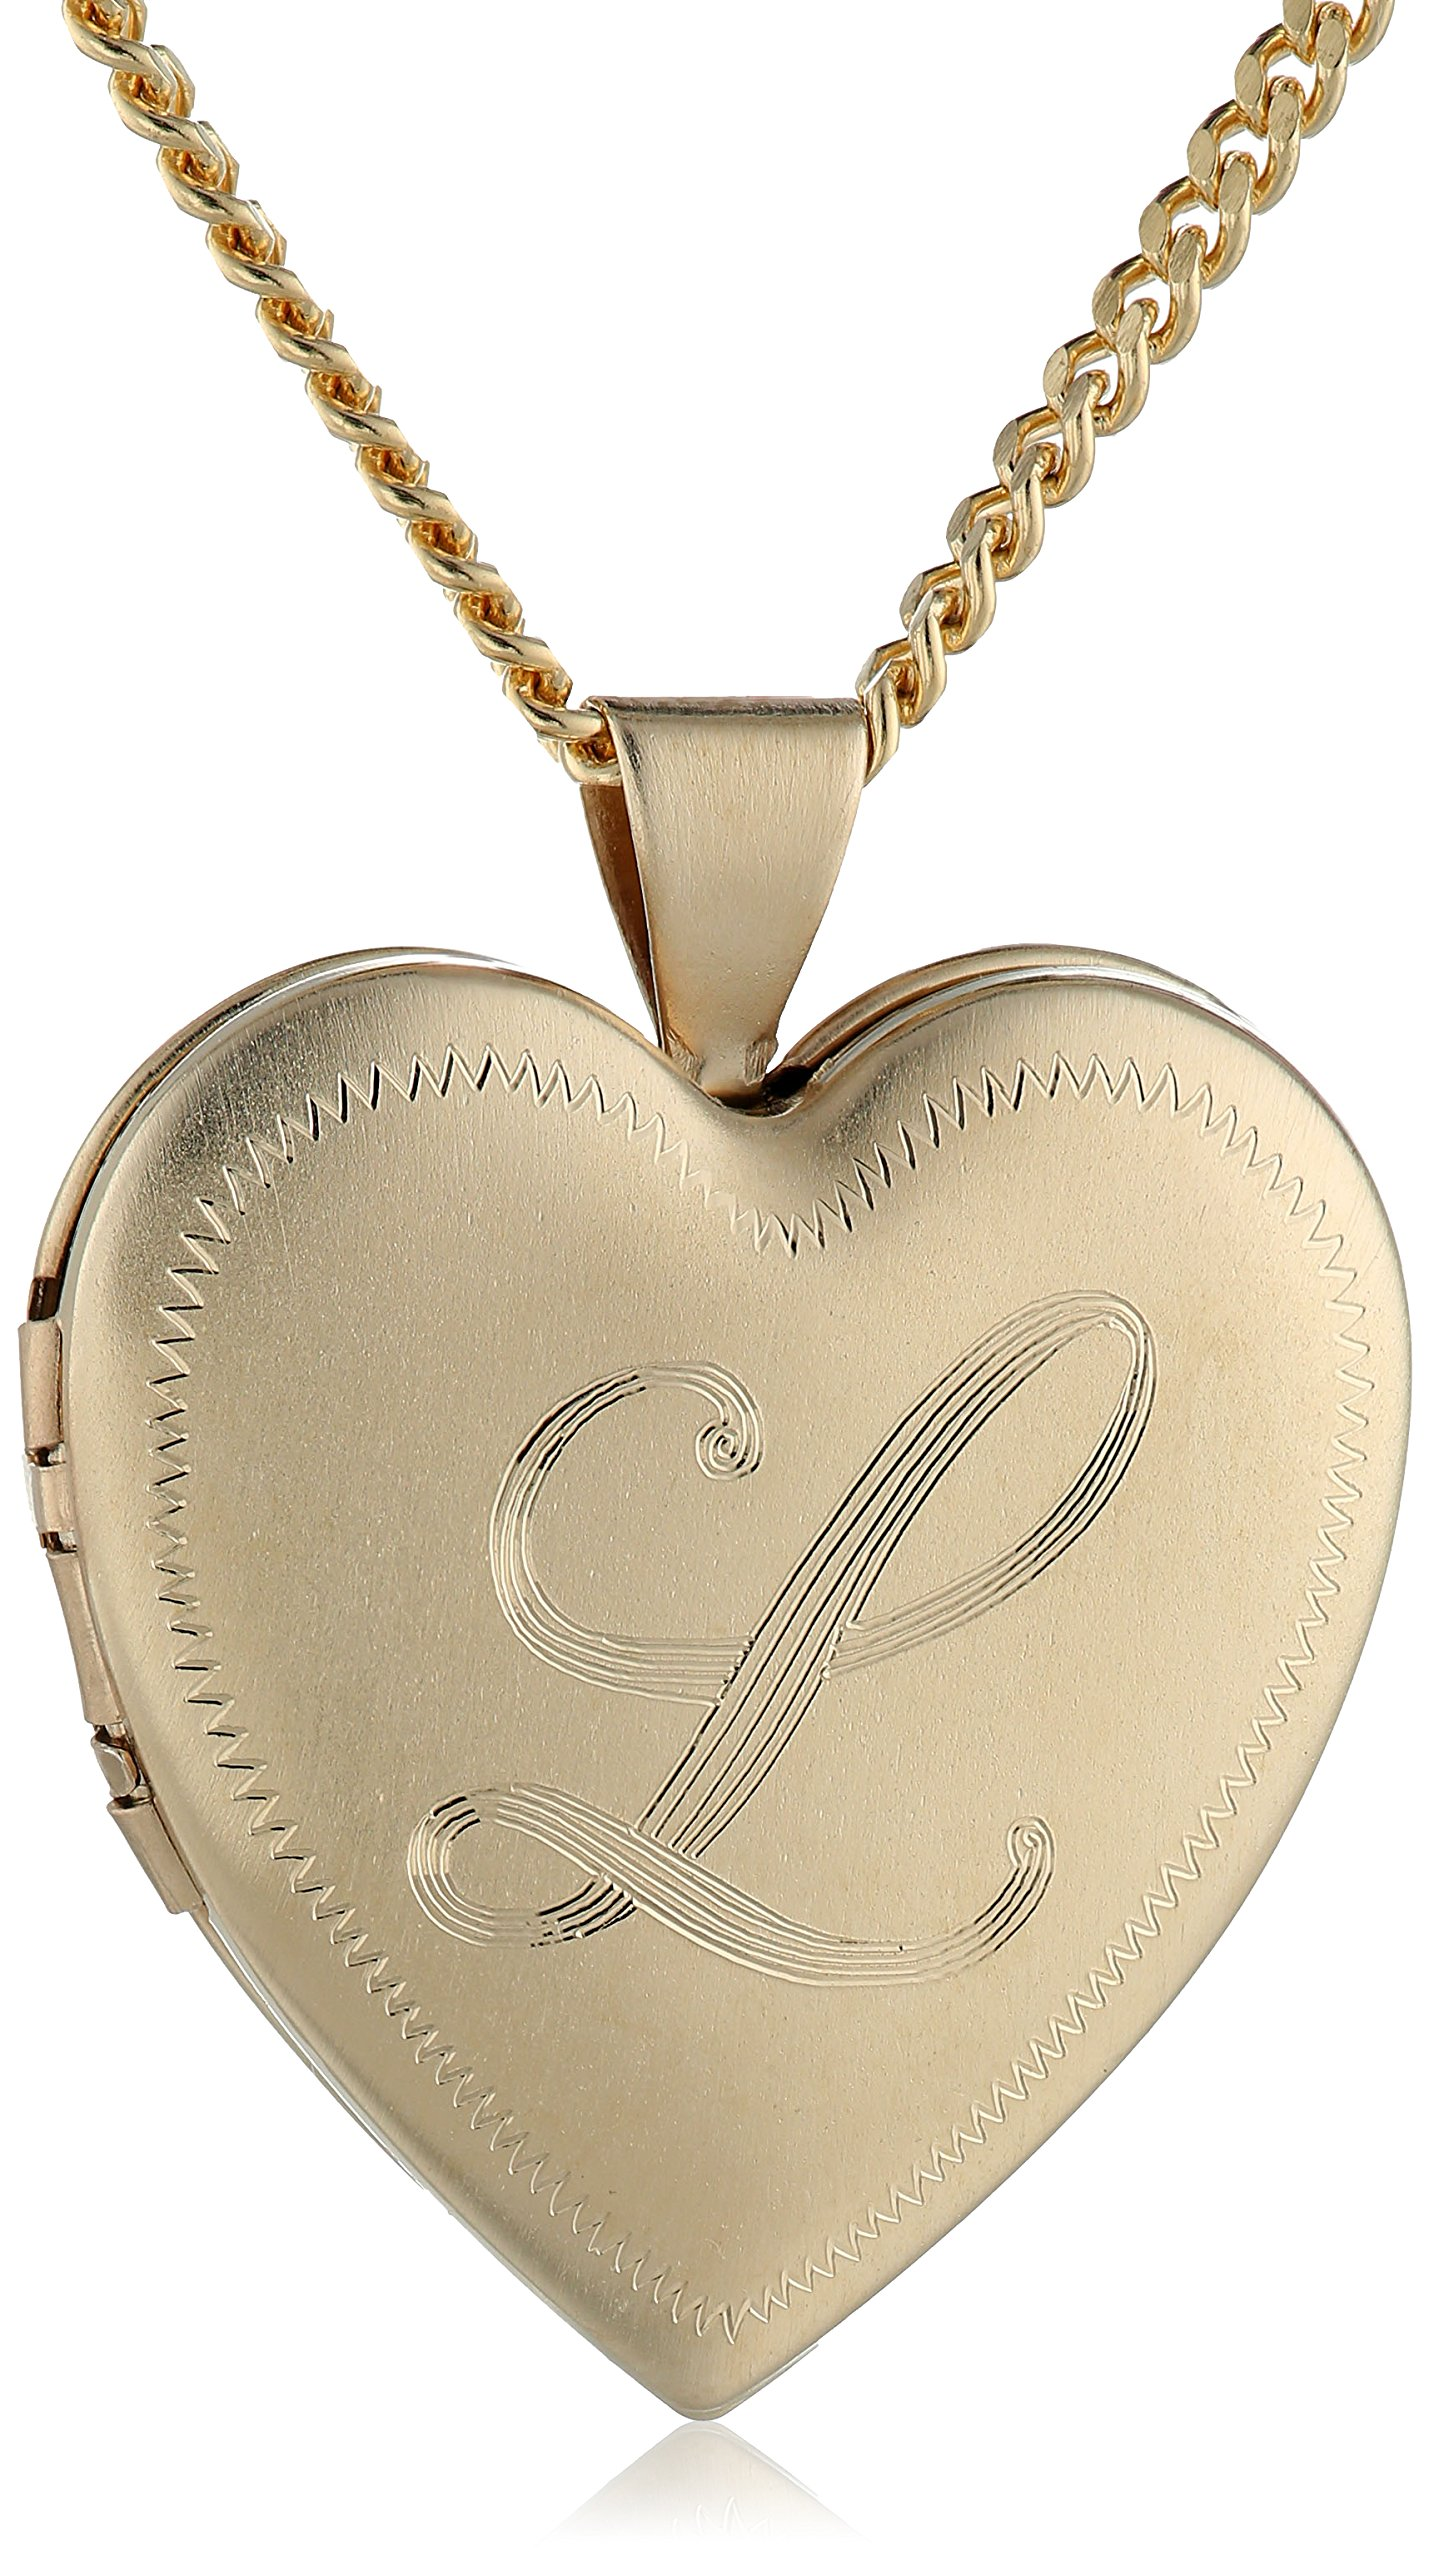 18k Gold-Plated Initial''L'' Heart 26mm (1'') Locket Necklace, 24''